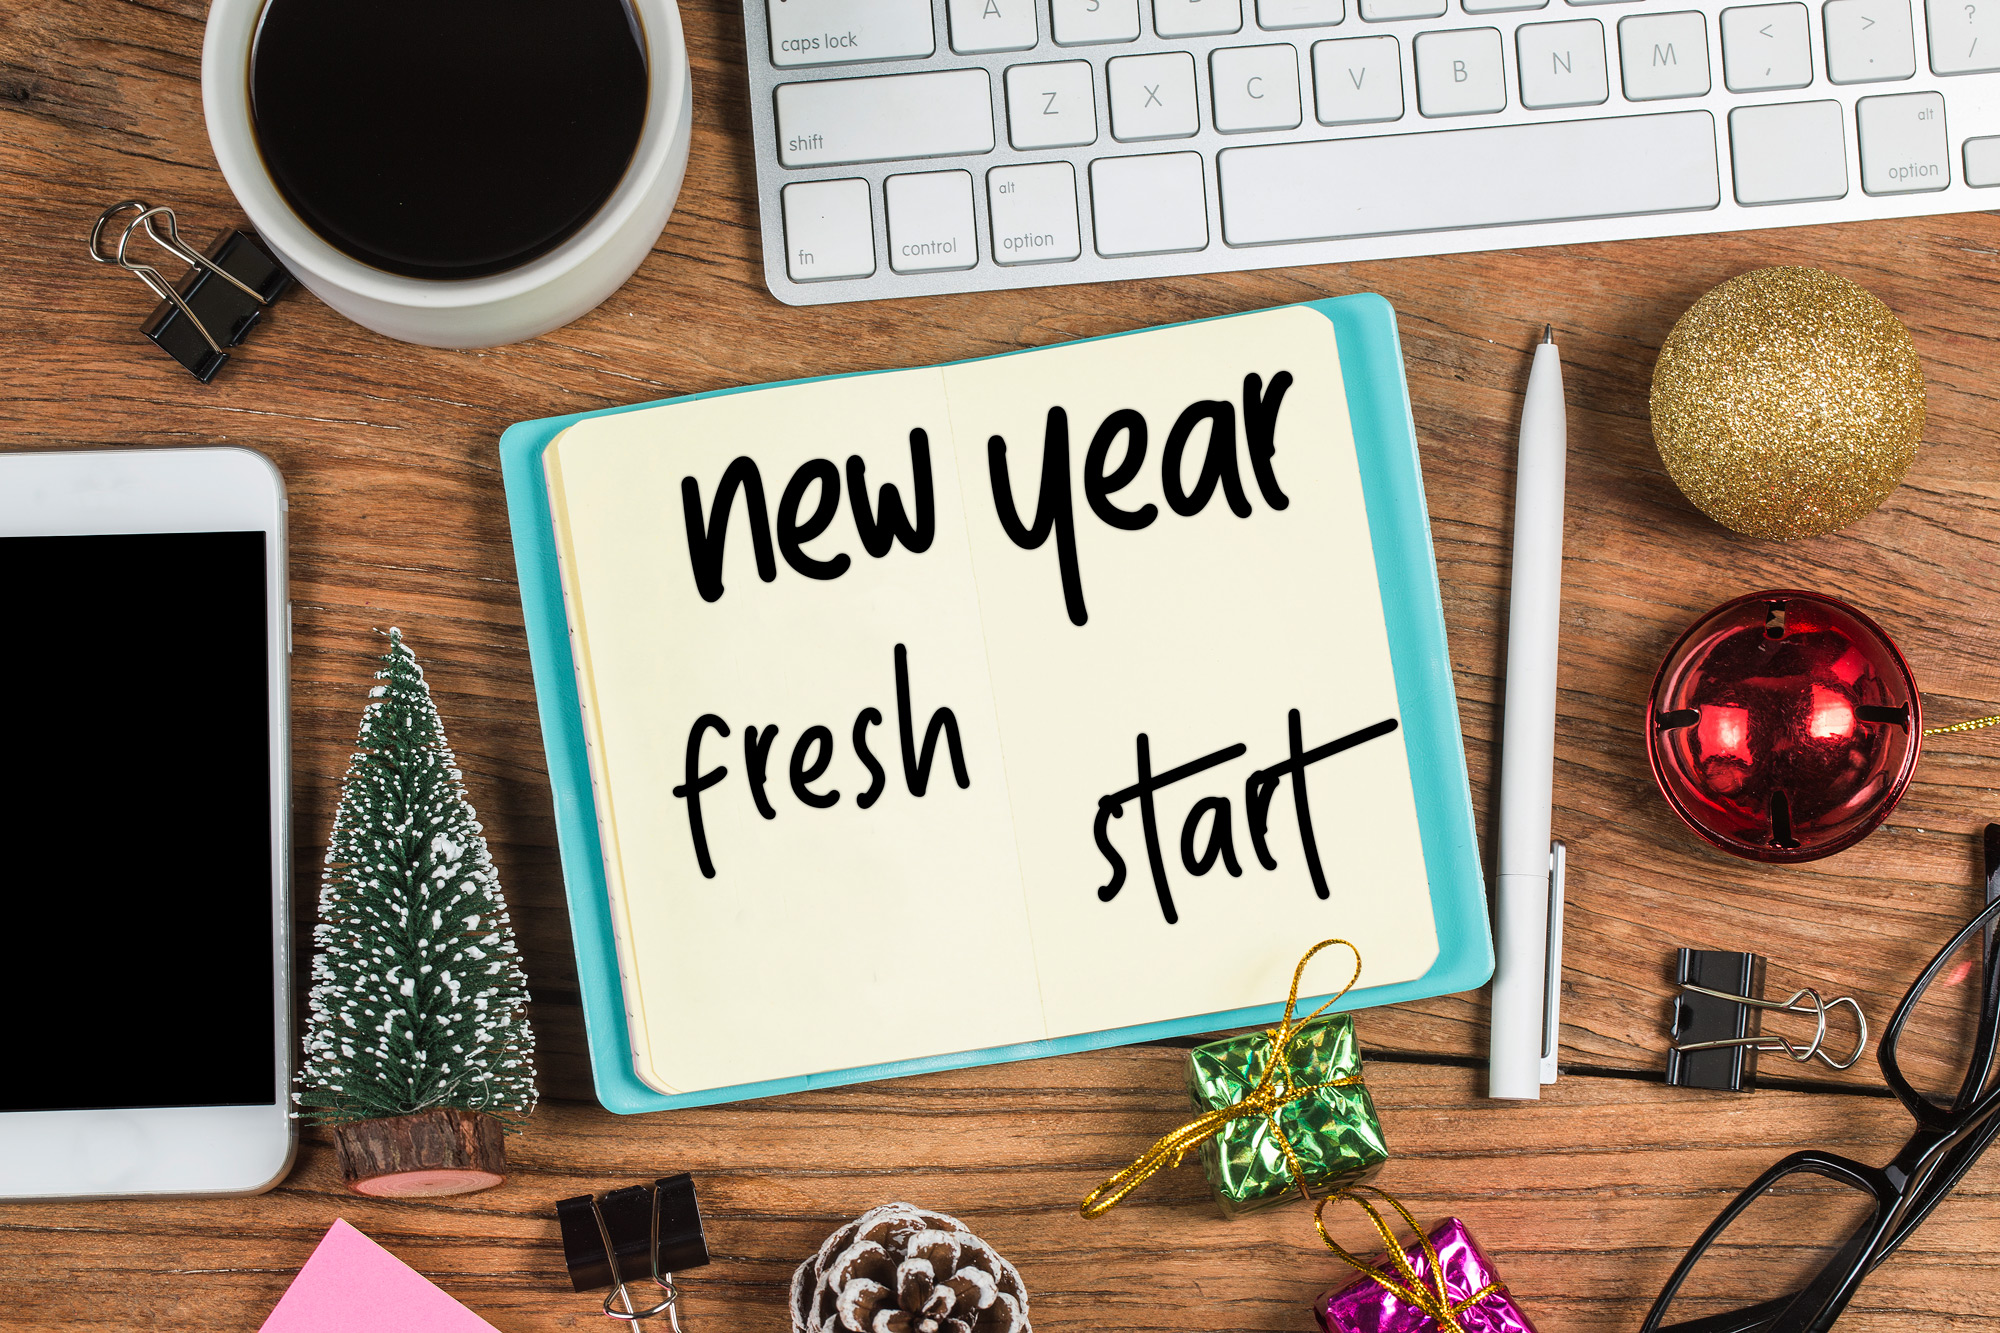 How to Make Vaping Your New Year's Resolution in 2020